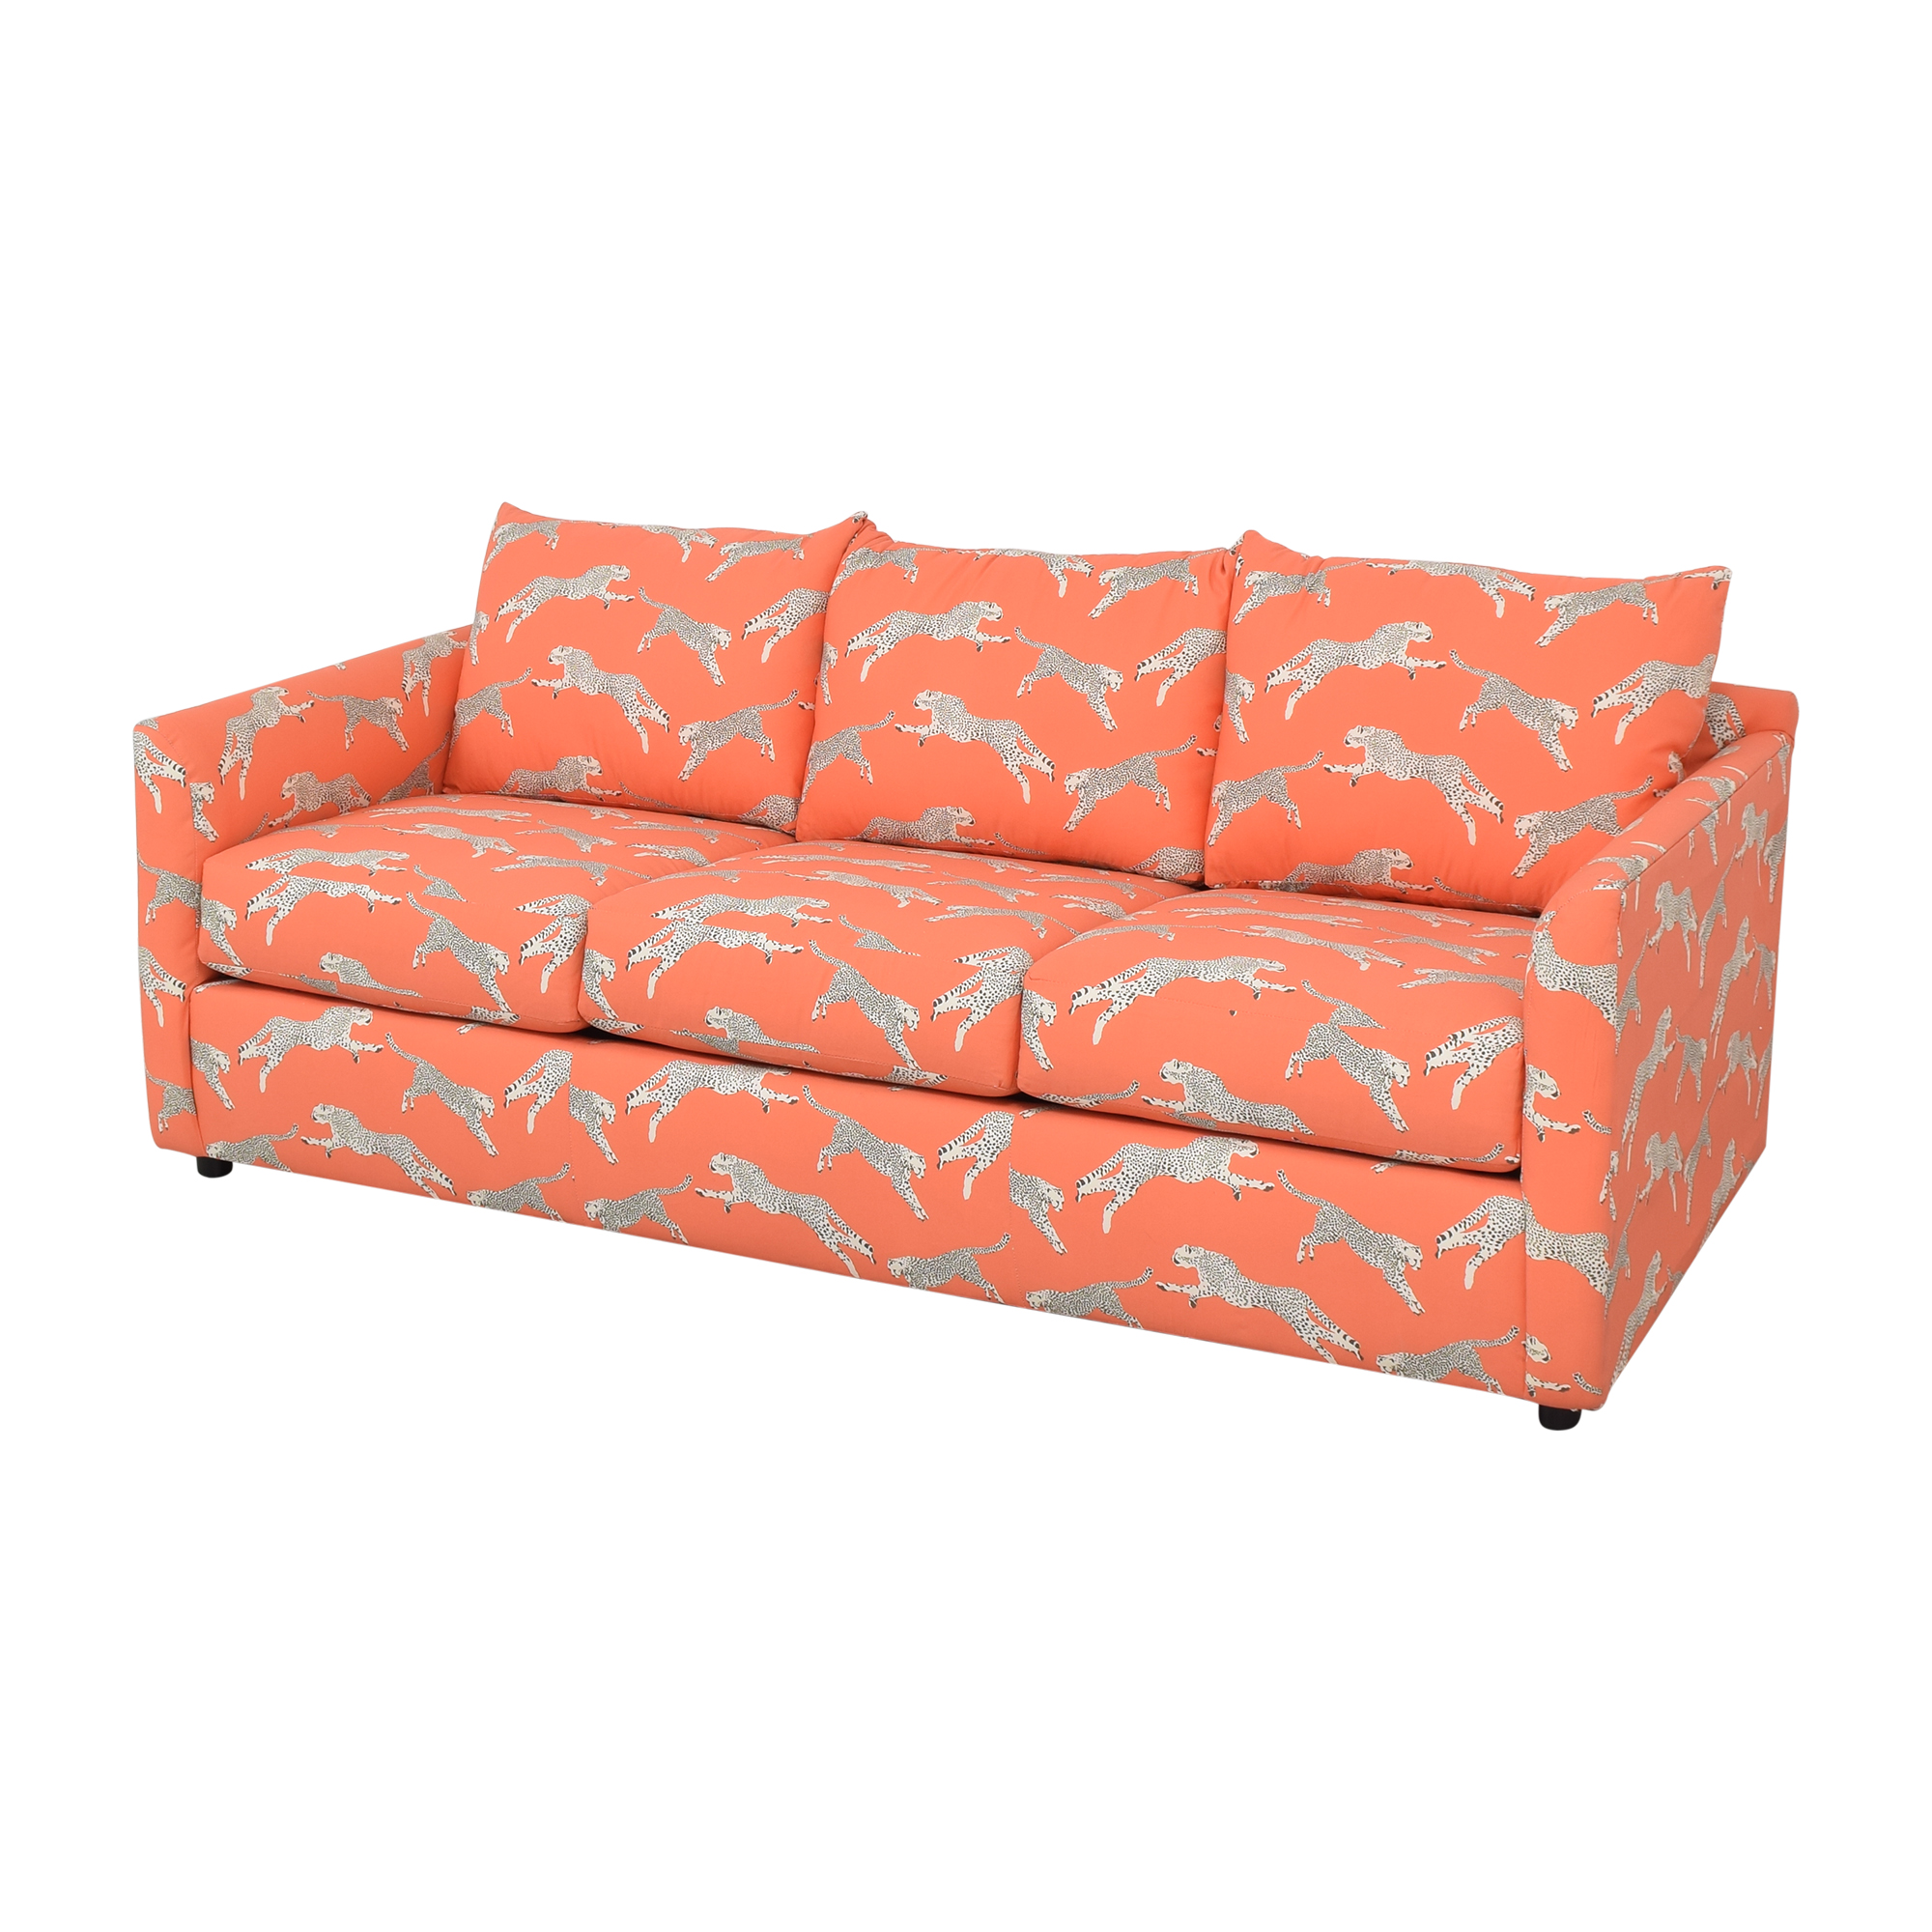 The Inside The Inside Tailored Sleeper Sofa in Coral Zebra by Scalamandré on sale